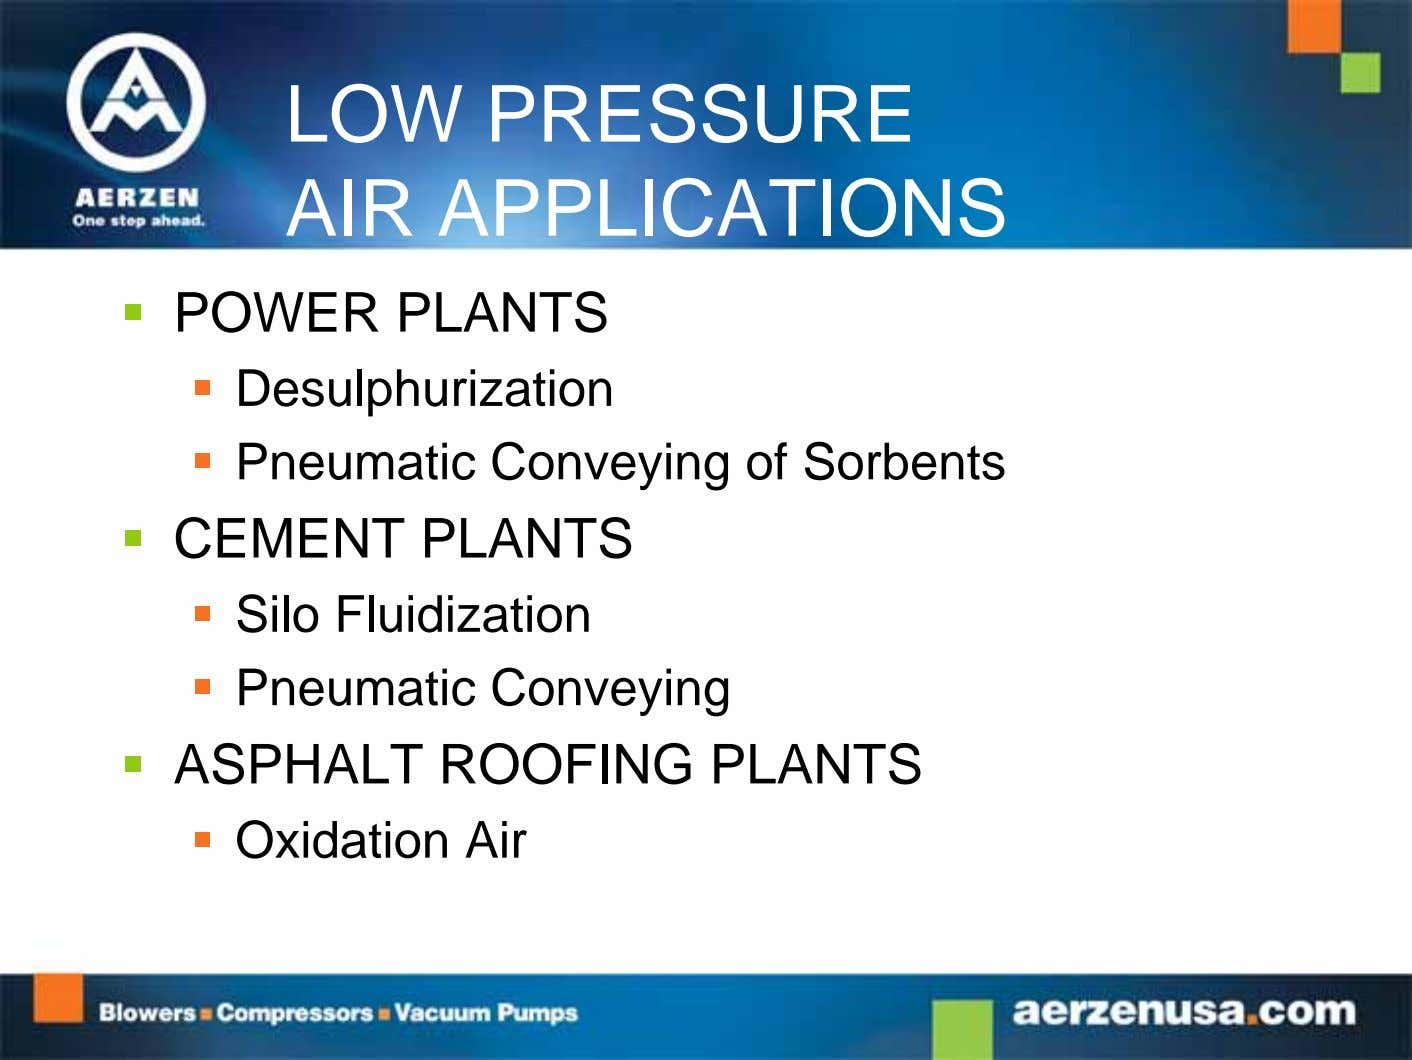 LOW PRESSURE AIR APPLICATIONS  POWER PLANTS  Desulphurization  Pneumatic Conveying of Sorbents 